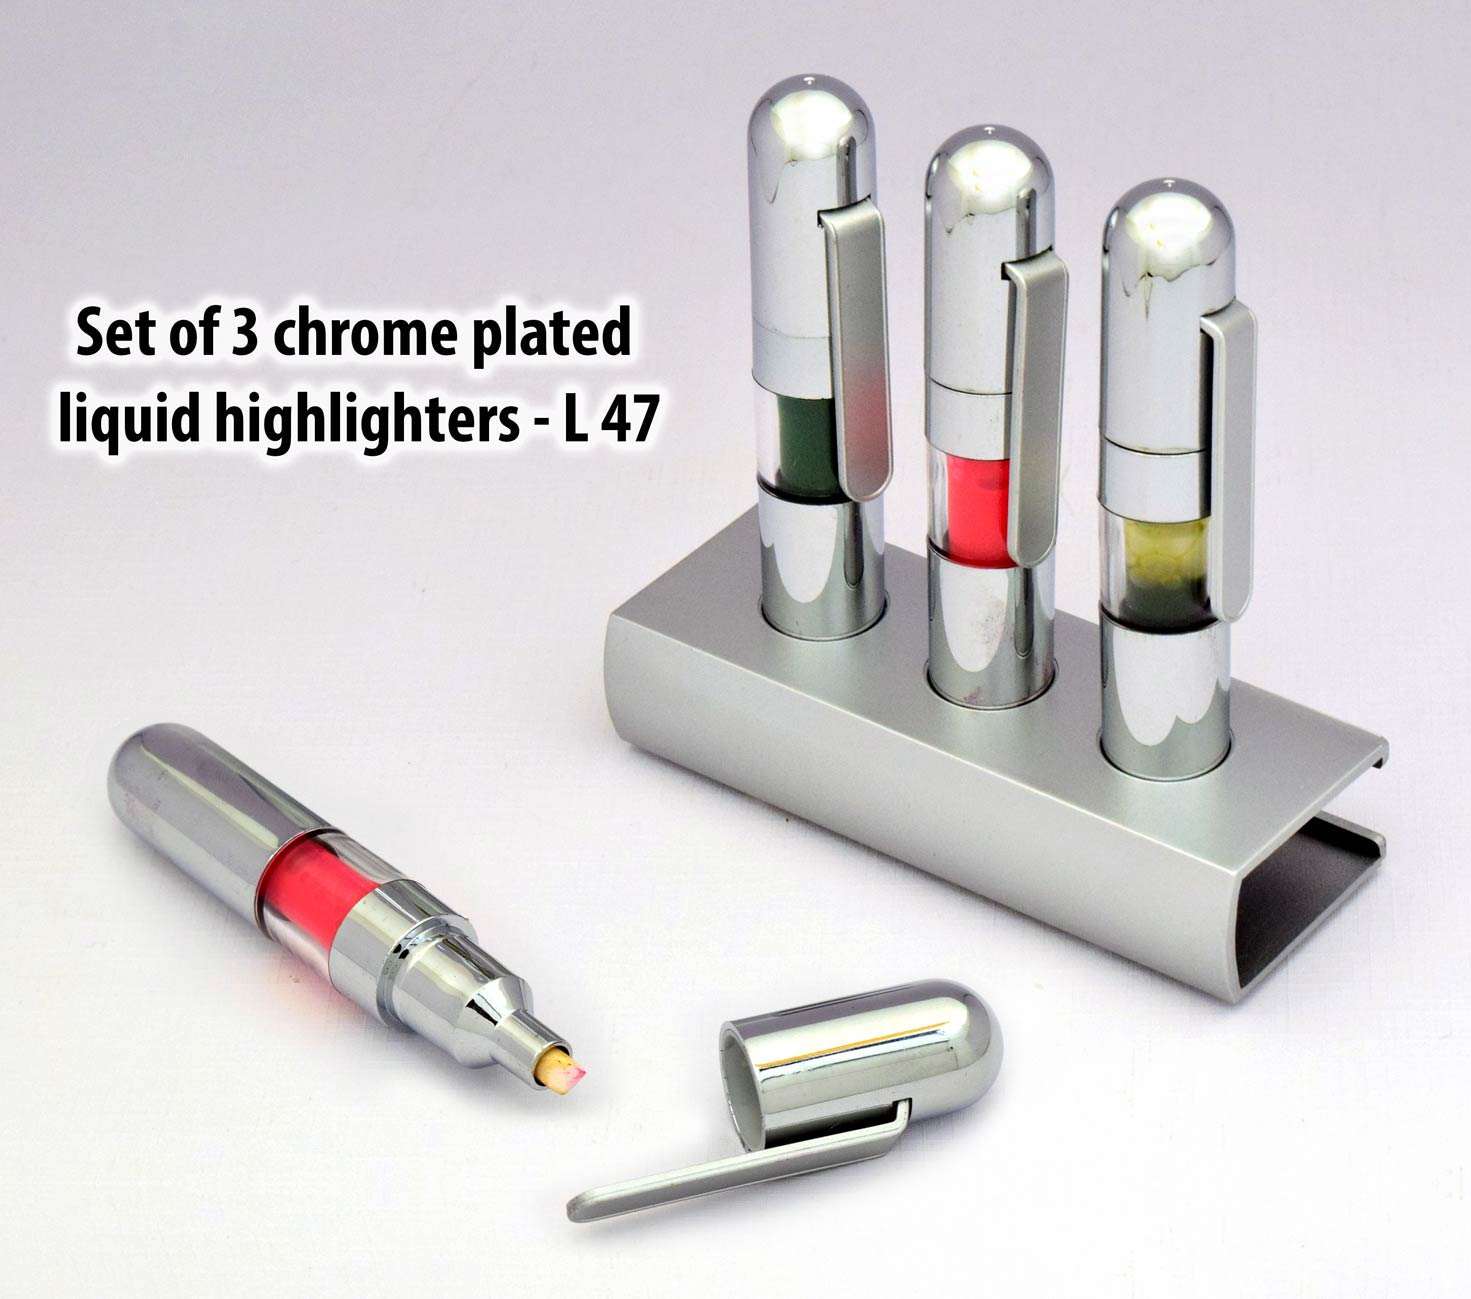 GL47 - Set of 3 chrome plated liquid highlighters